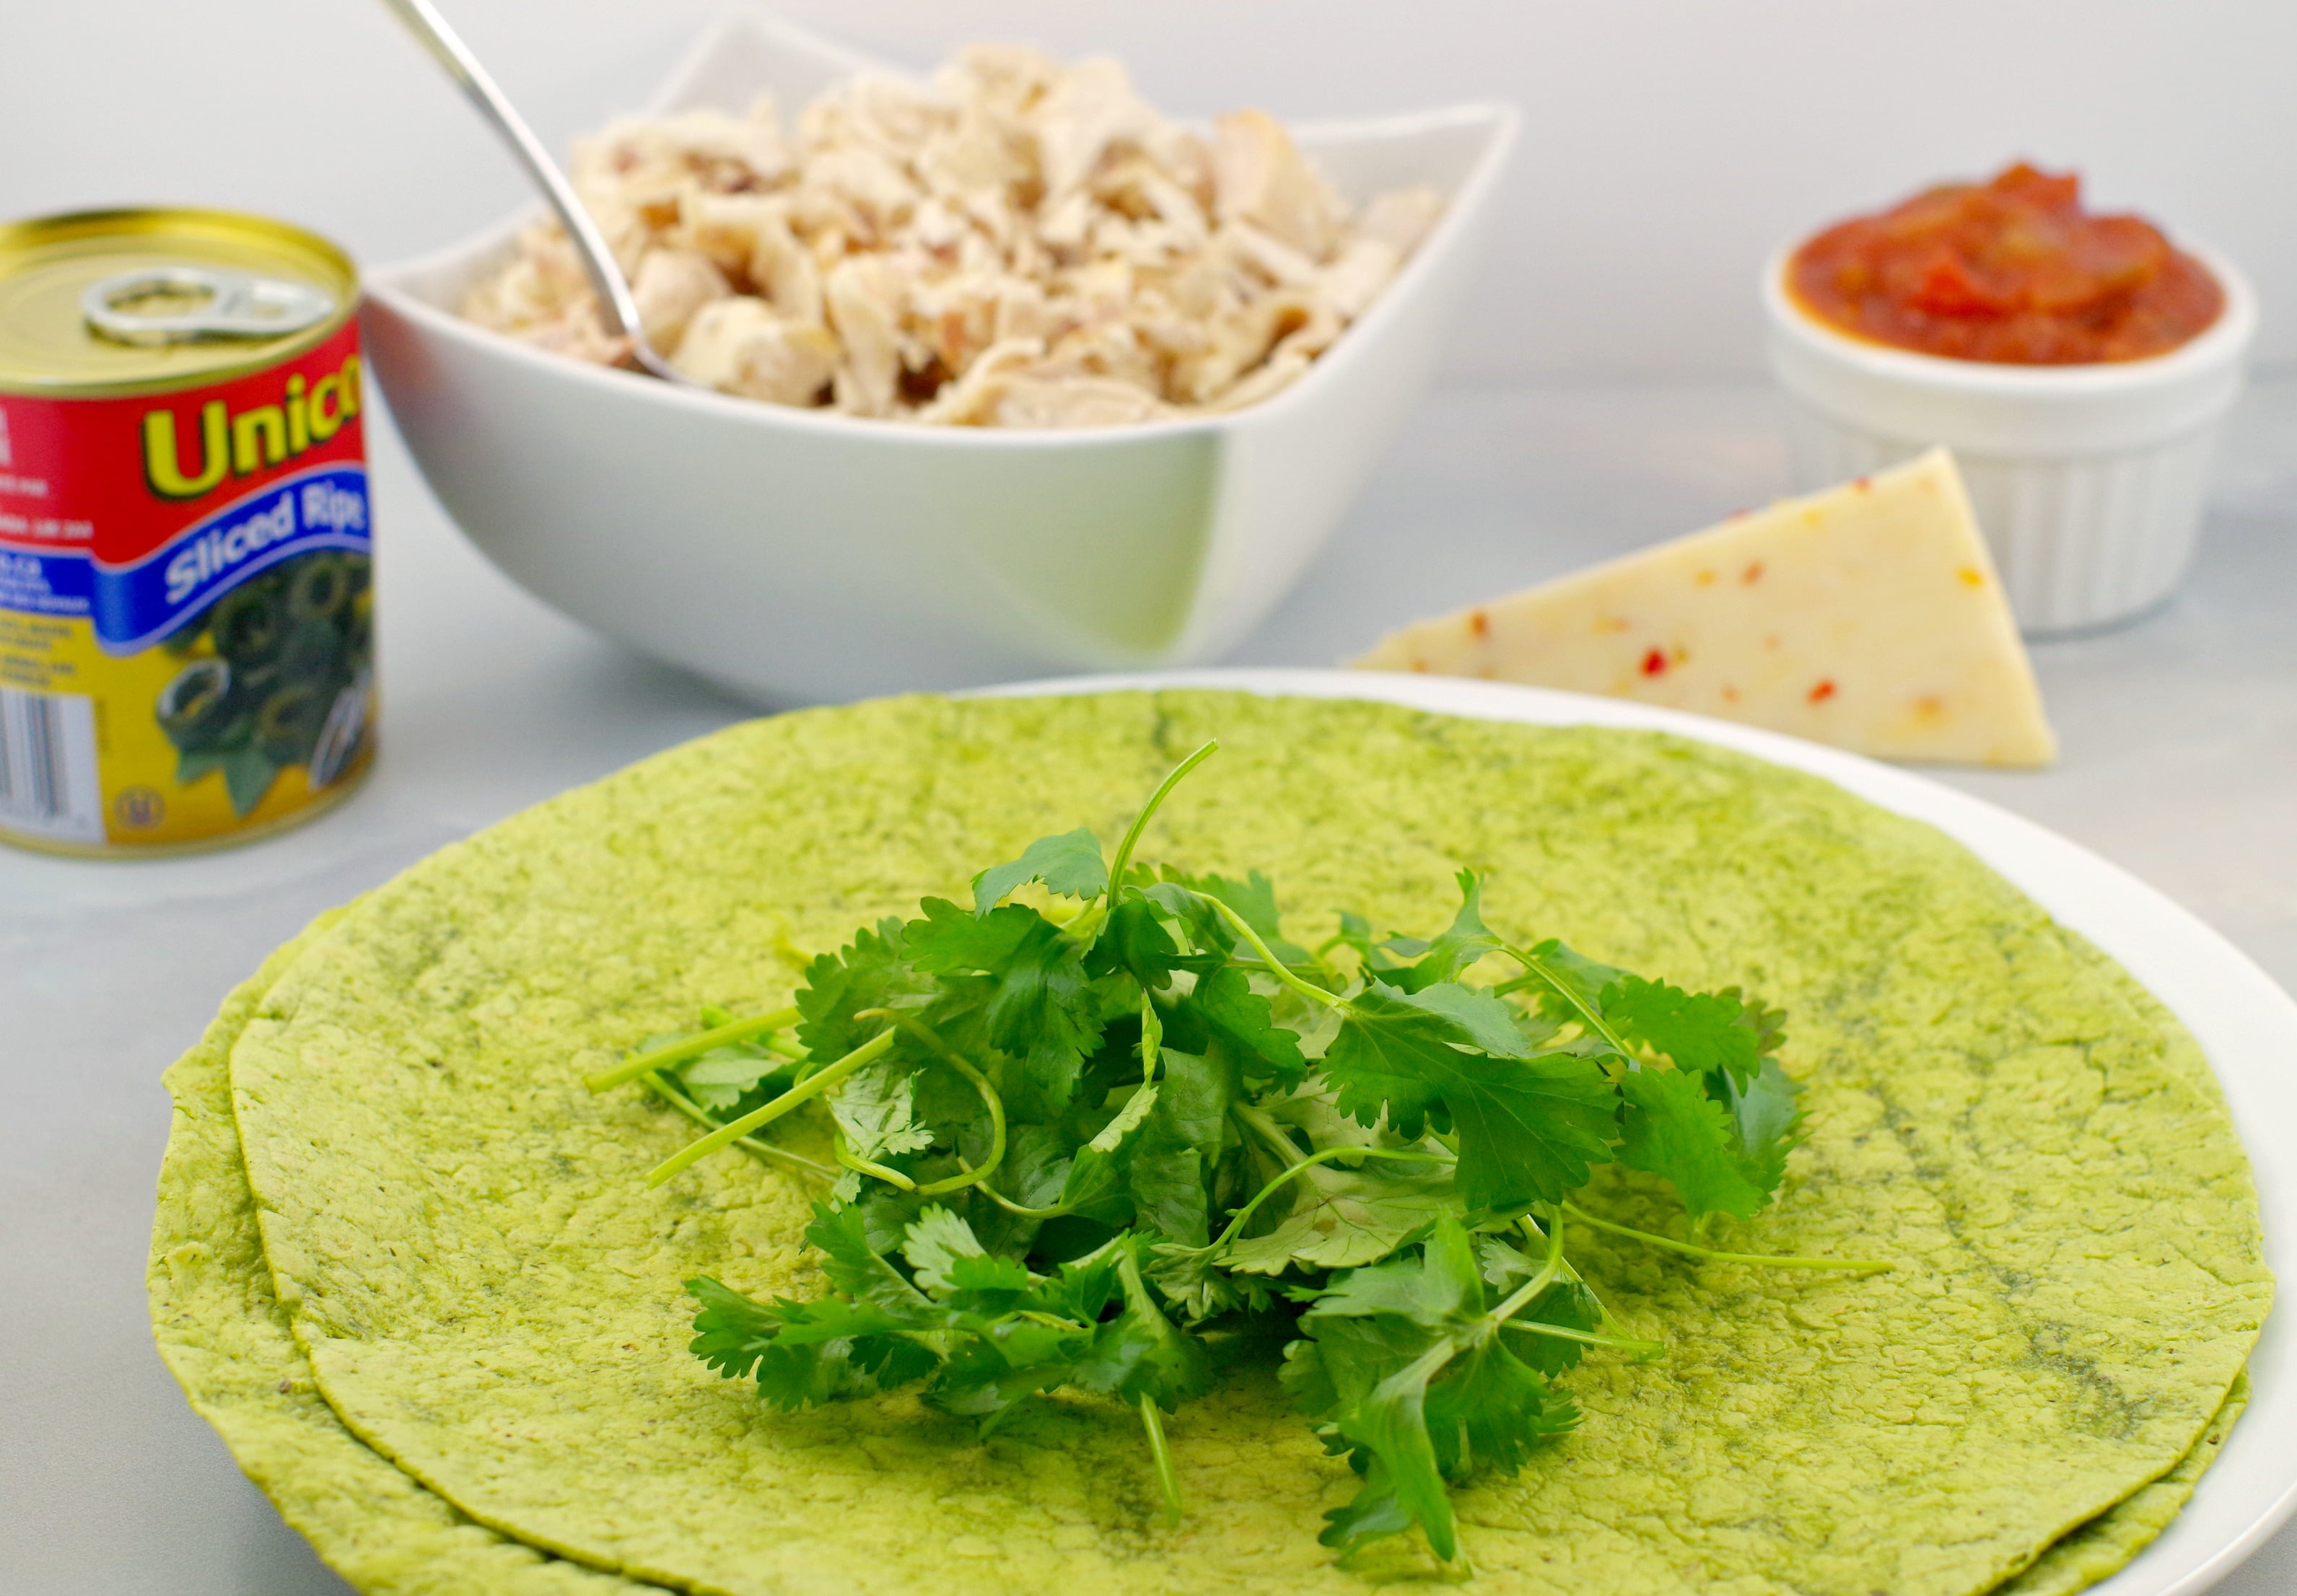 Easy Chicken Quesadillas ingredients - Foodmeanderings.com